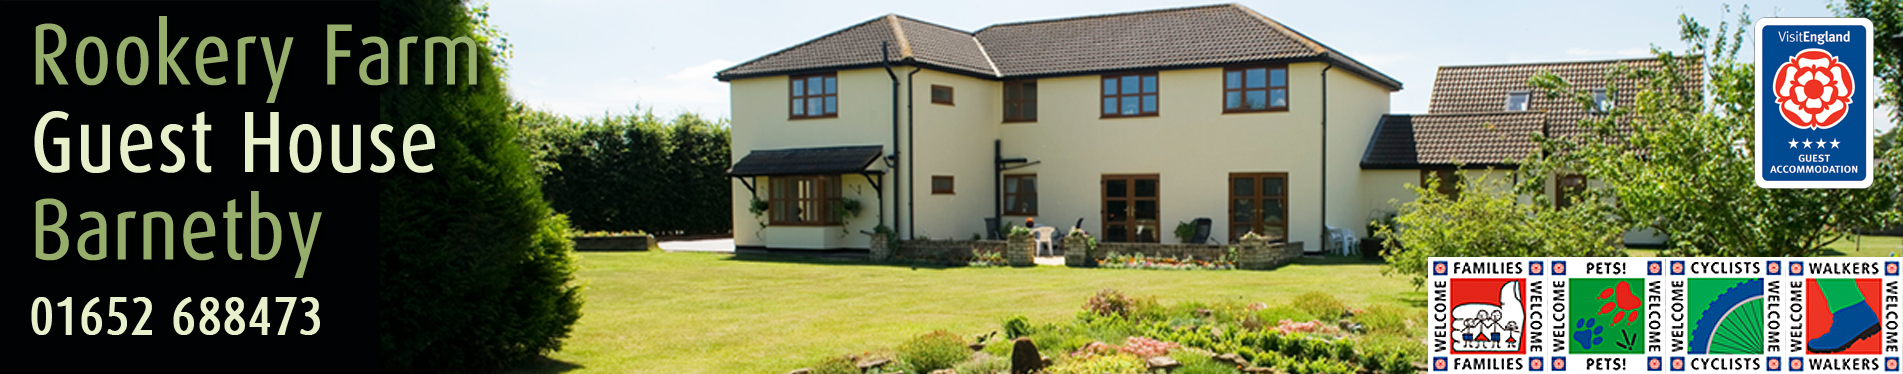 Rookery Farm Guest House